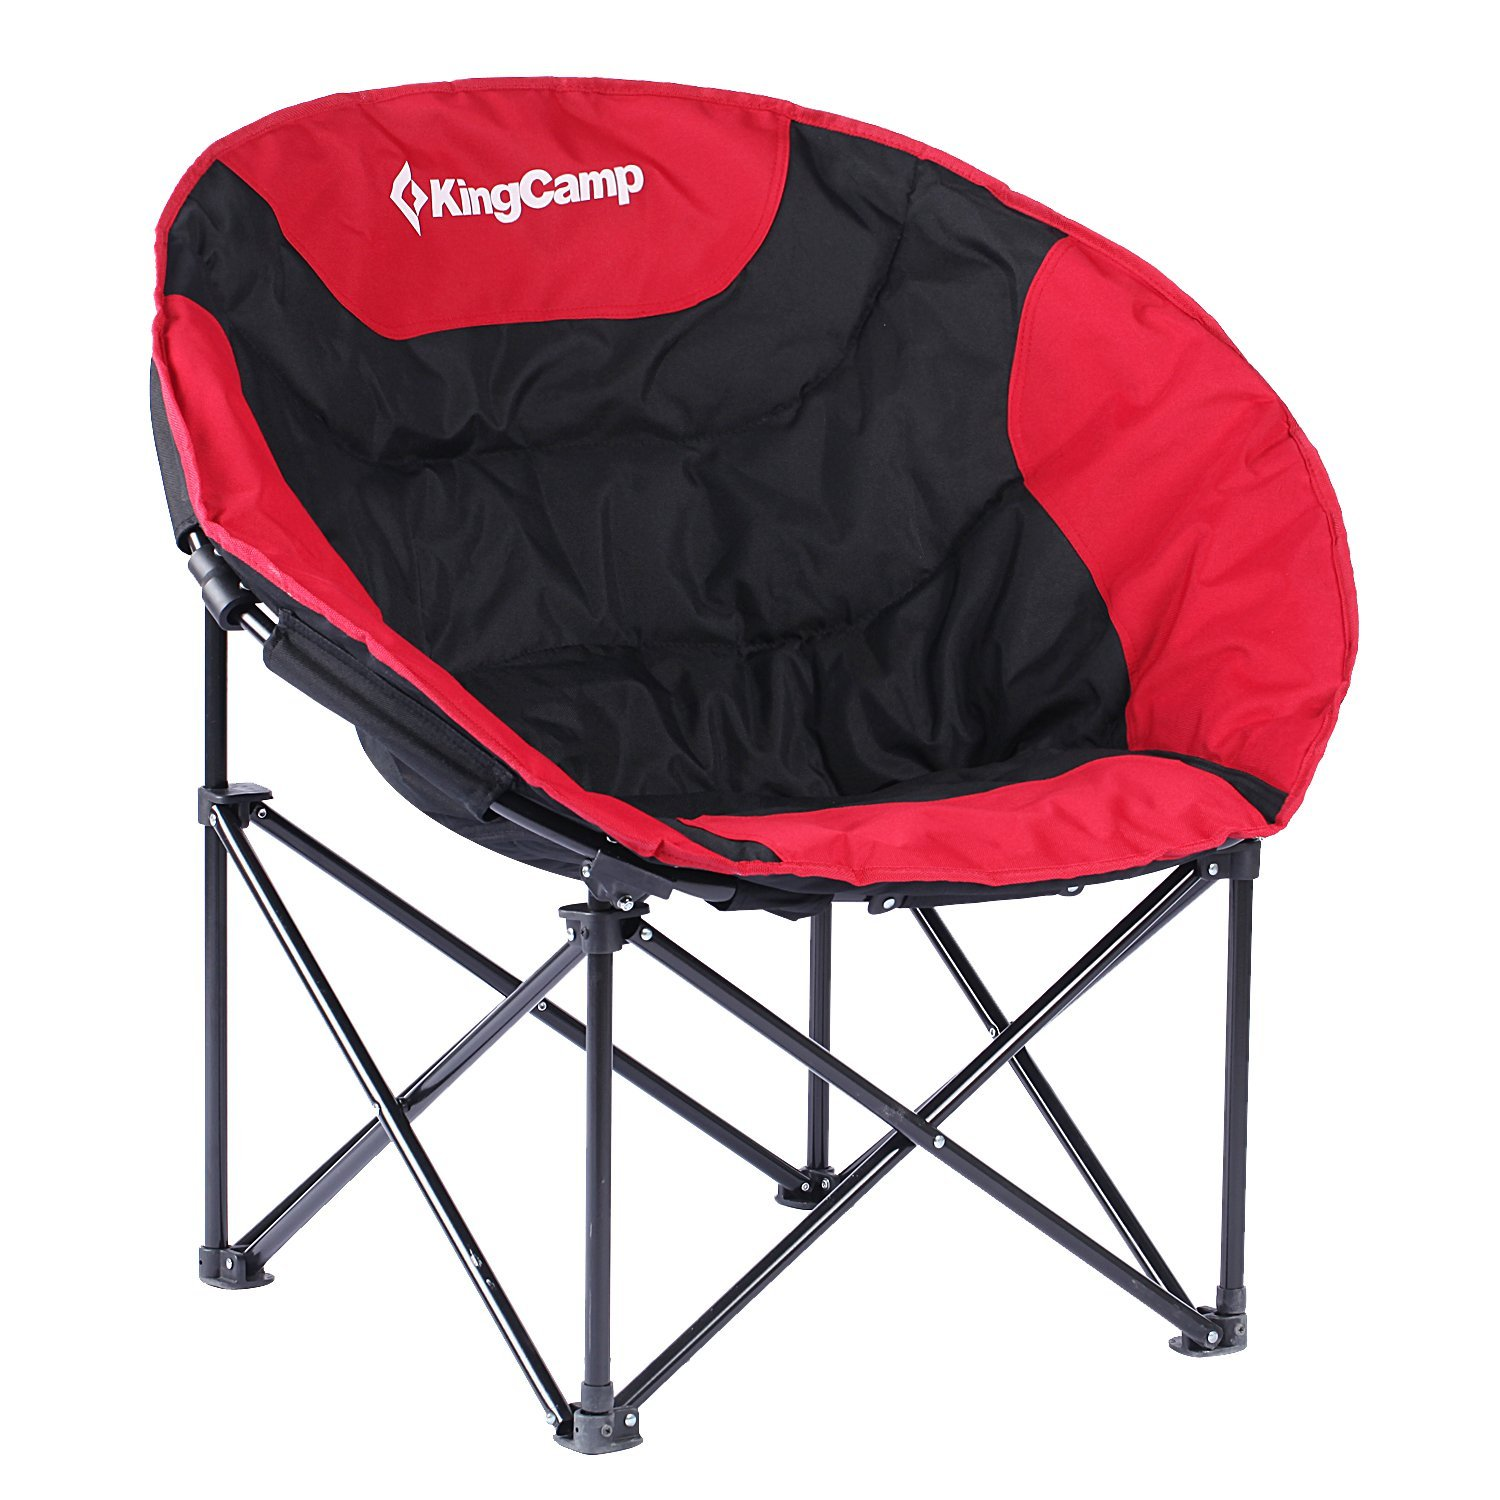 KingCamp Moon Lightweight Round Portable Stable Compact F...